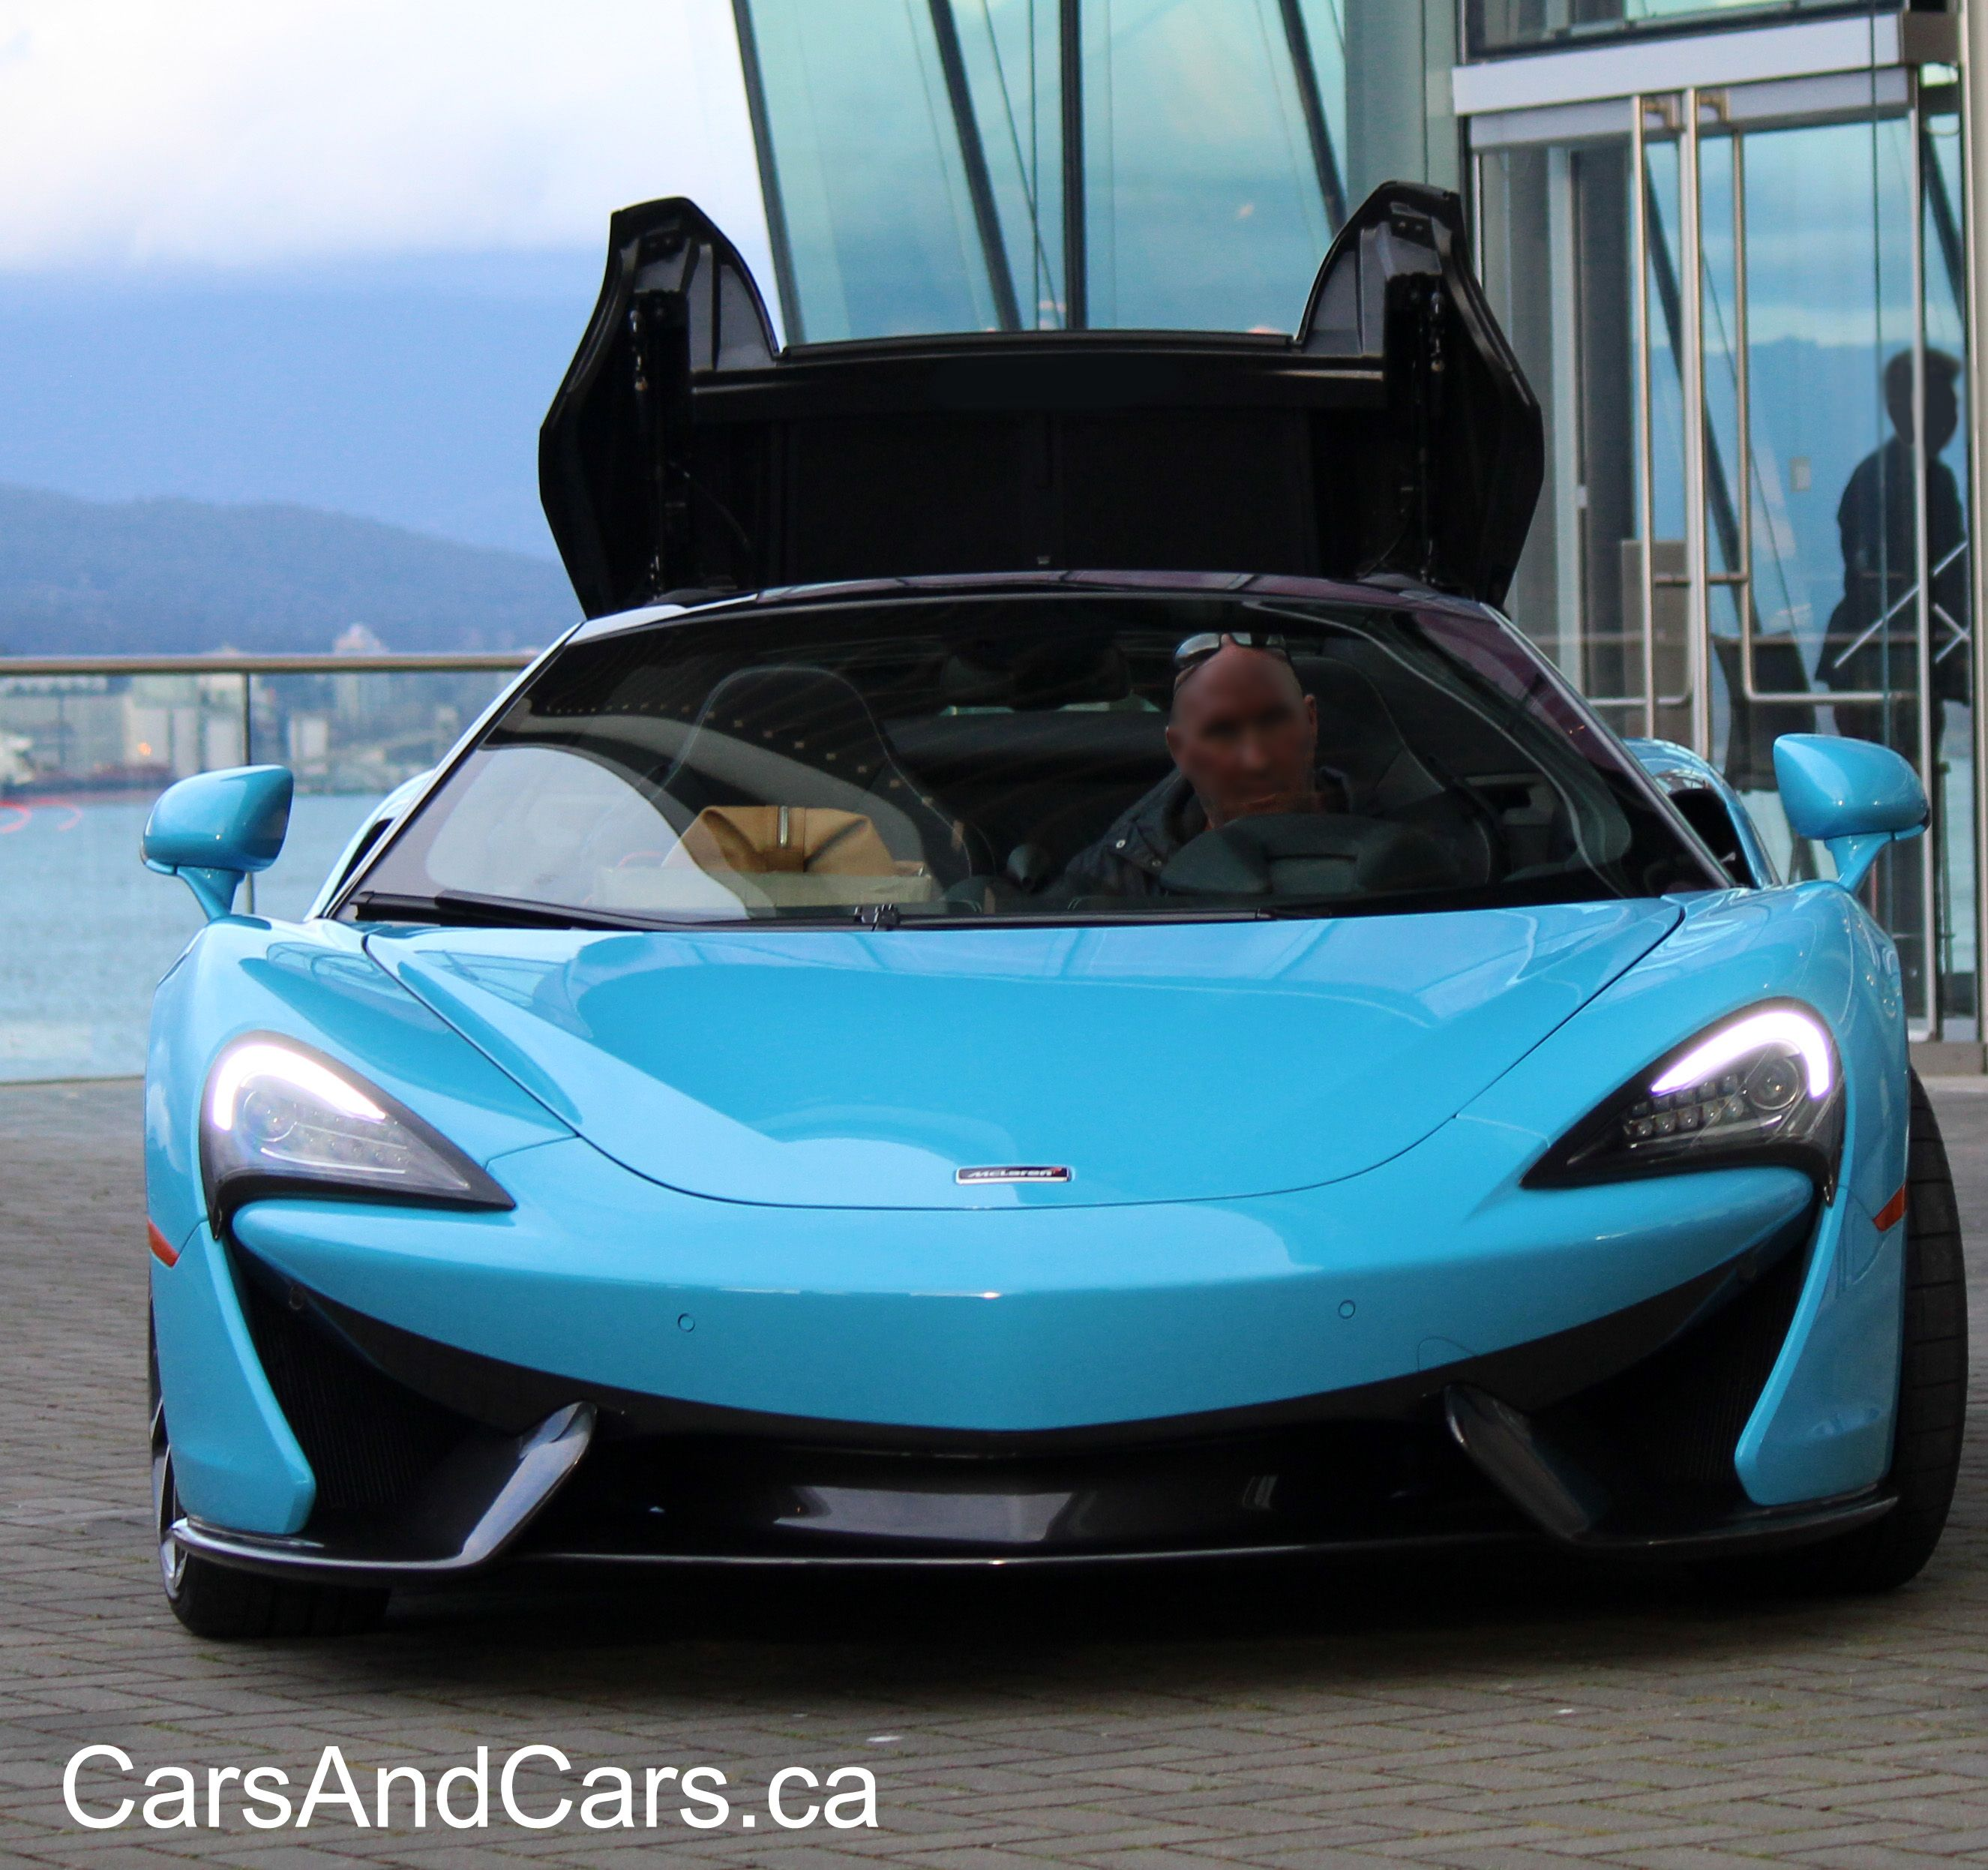 Pin By Julio Rodrigues On Voitures In 2020 Koenigsegg Super Cars Super Luxury Cars